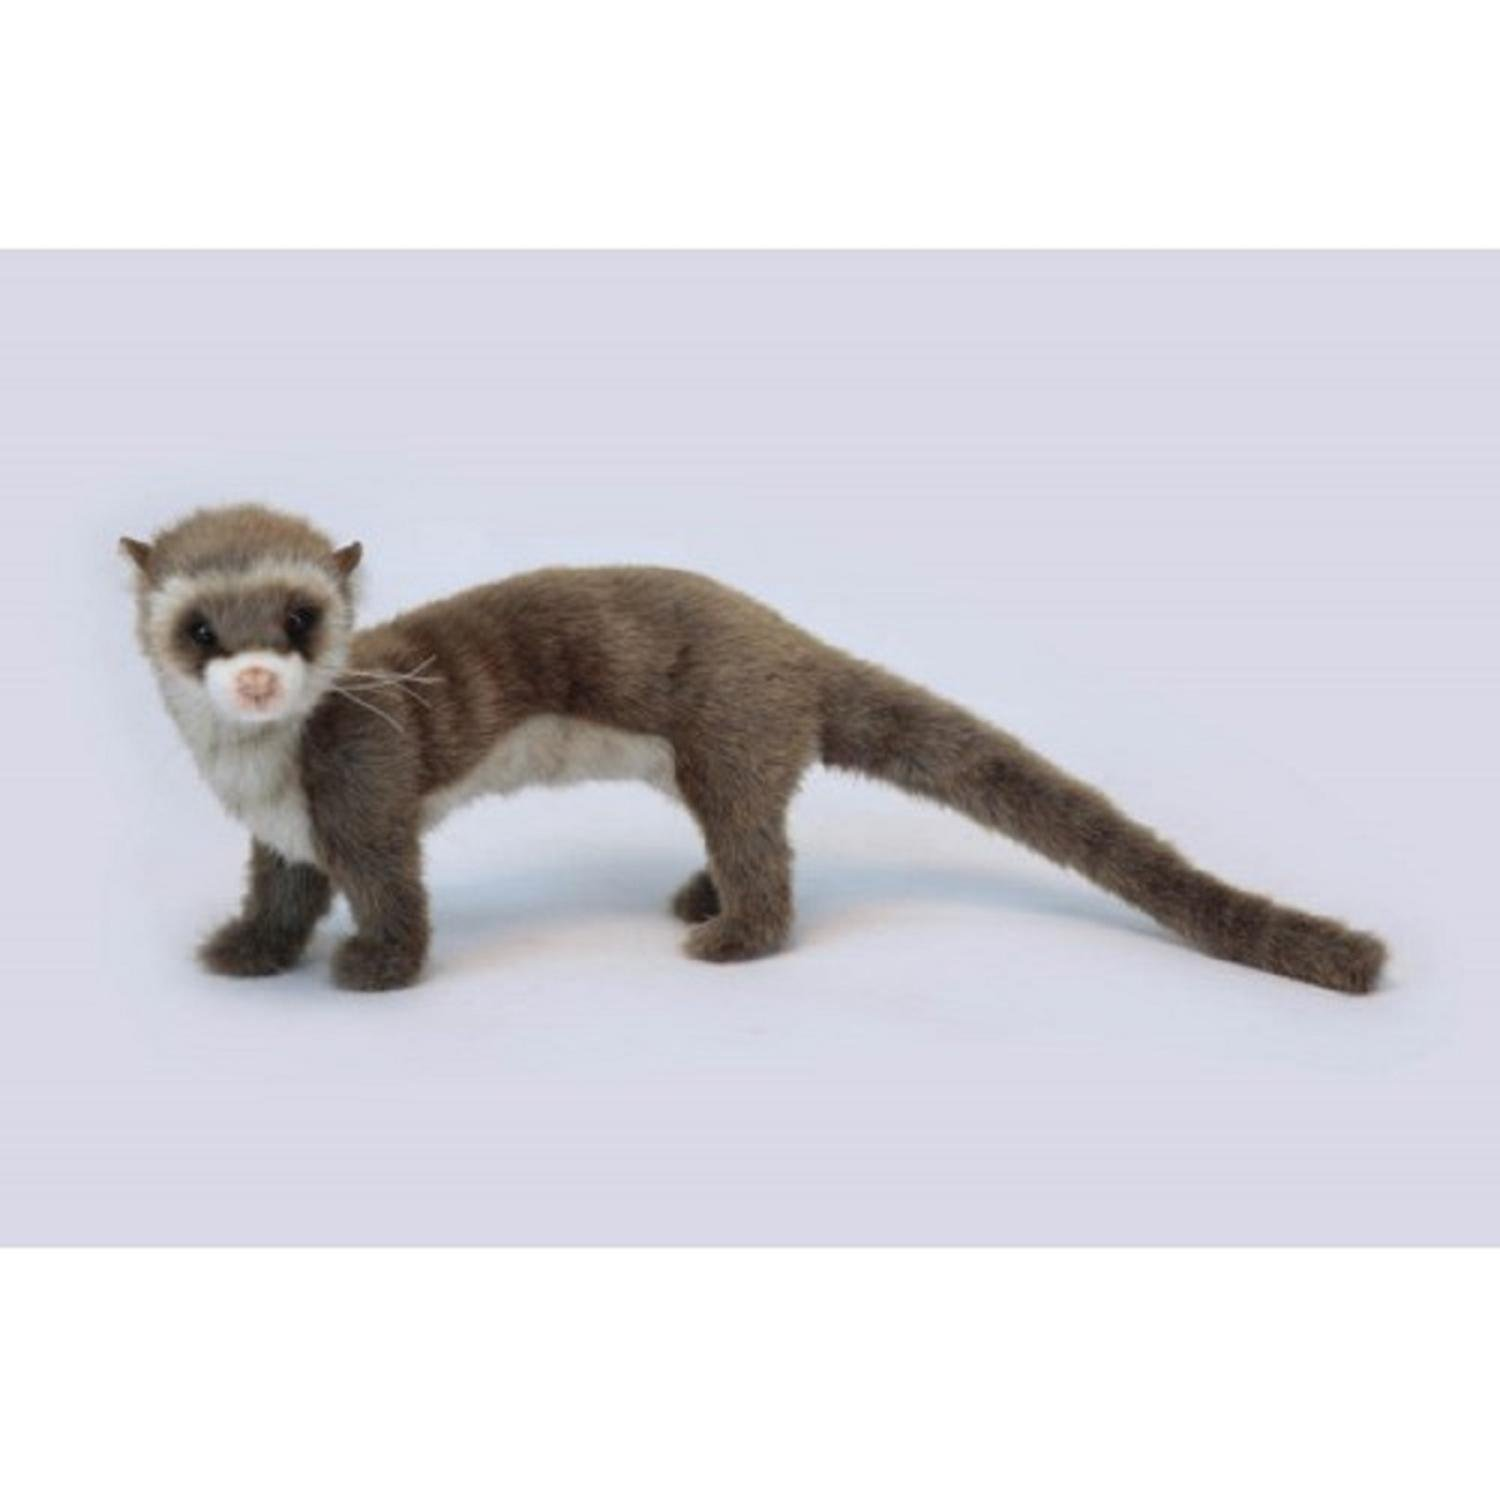 Pack of 3 Life-like Handcrafted Extra Soft Plush Brown Ferret on All Four Feet Stuffed Animals 22.5''